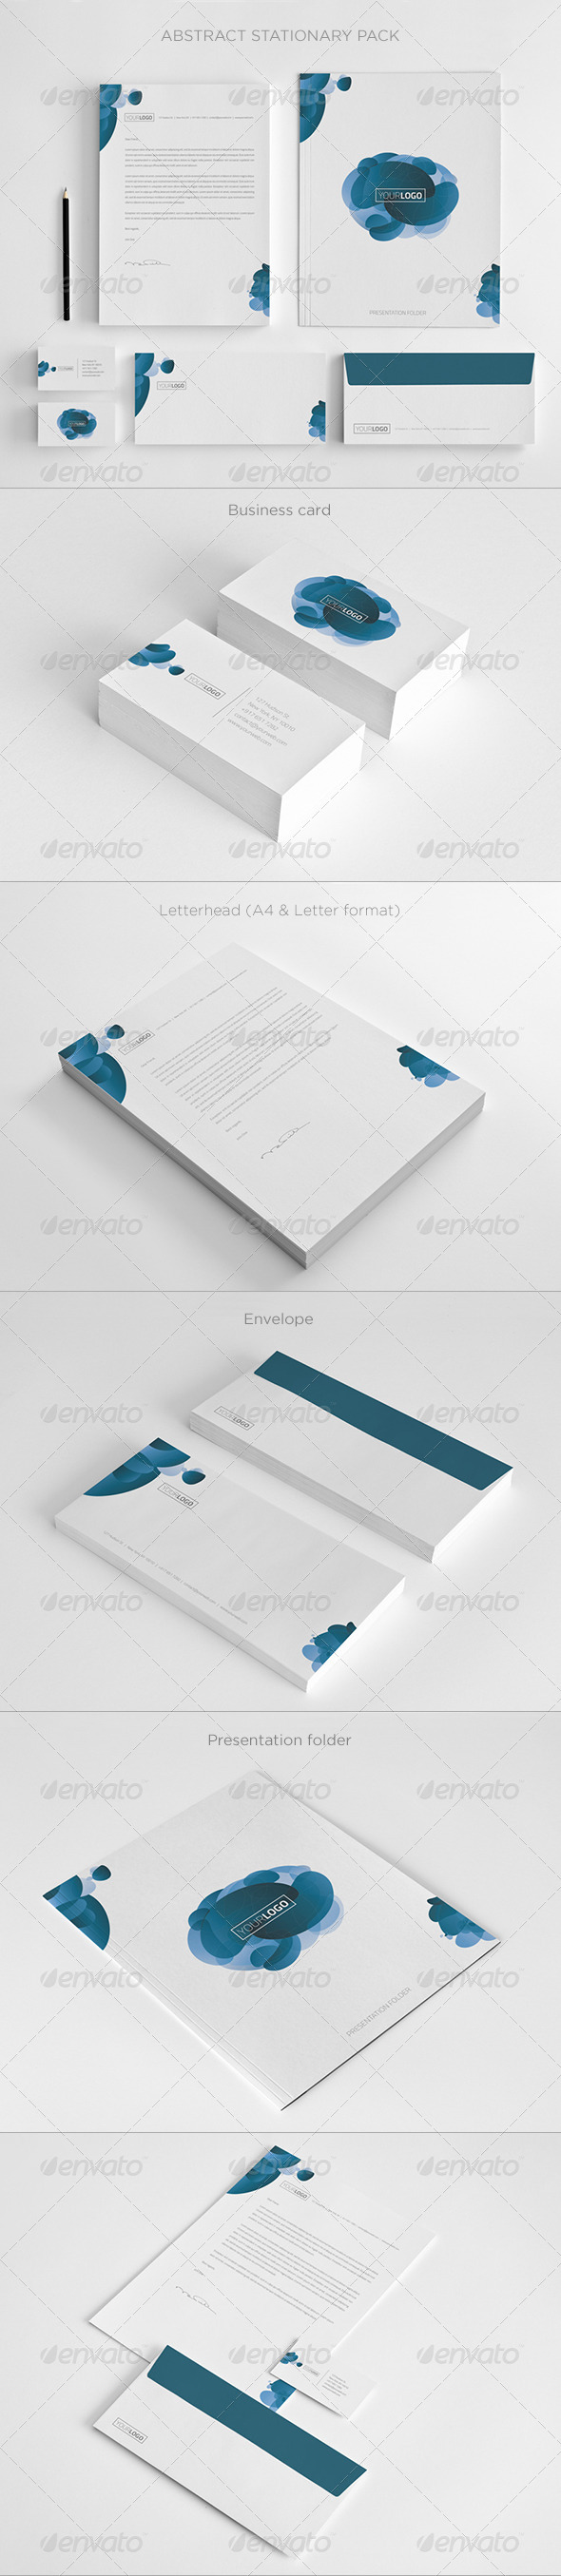 GraphicRiver Abstract Stationary Pack 5296834